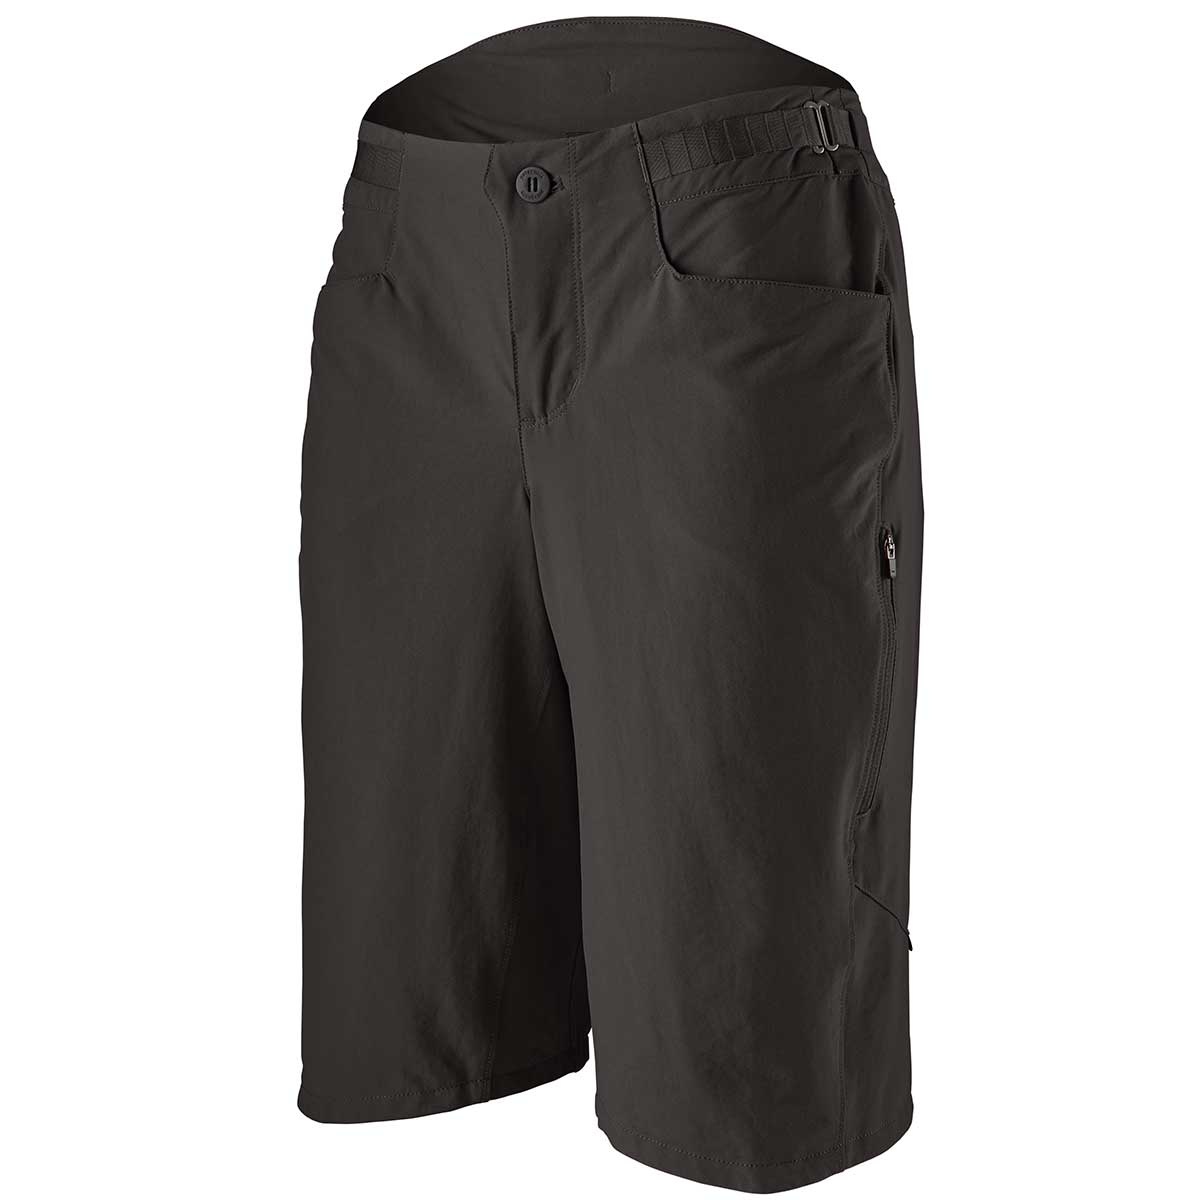 Patagonia women's Dirt Craft Bike Short in Black front view